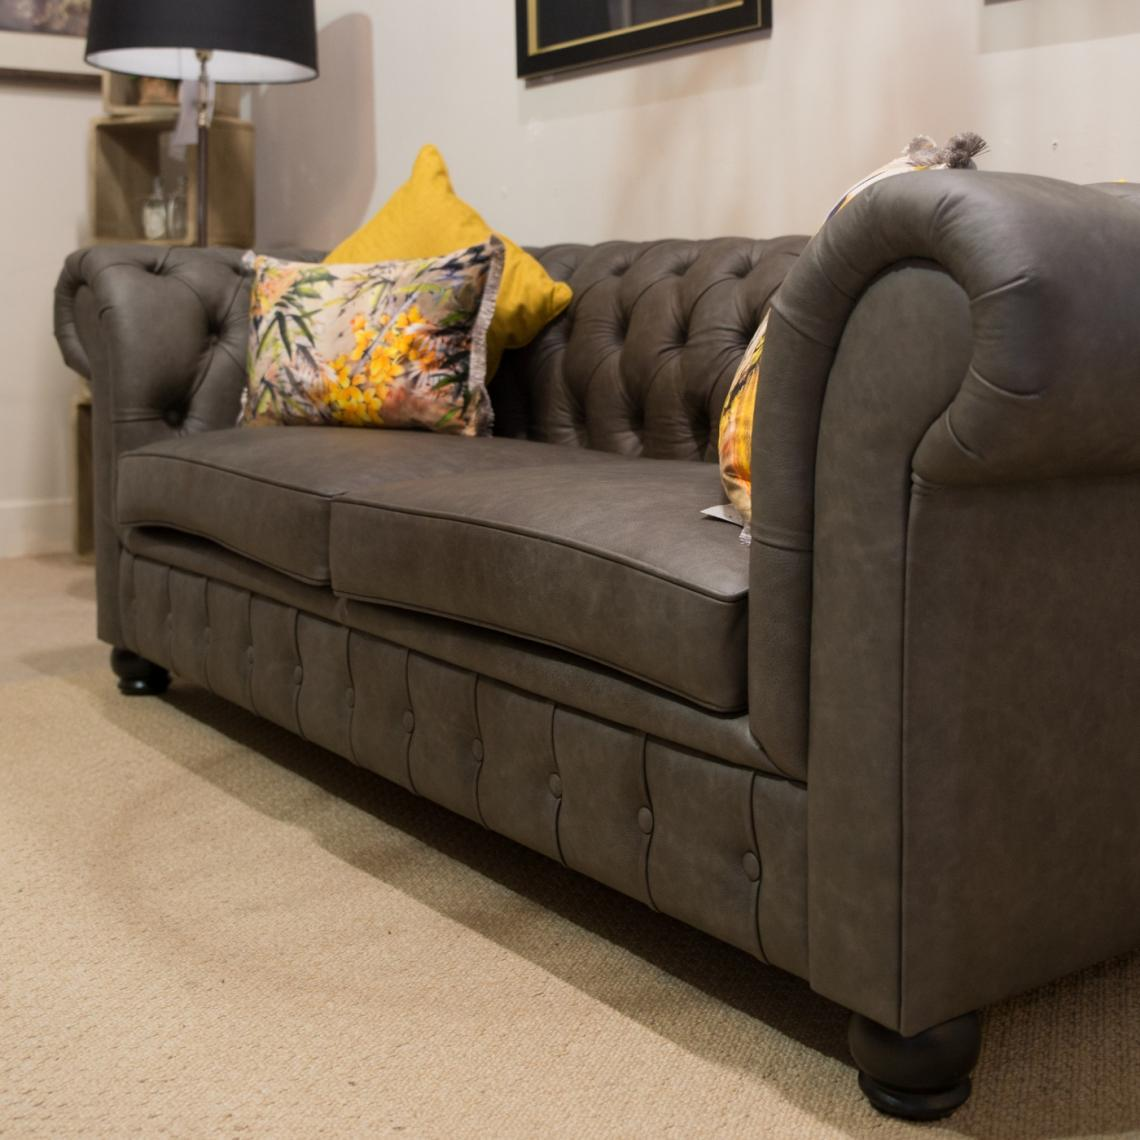 Sofa And Home Voucher Code Rathwood Furniture Home Furniture Stores Across Ireland